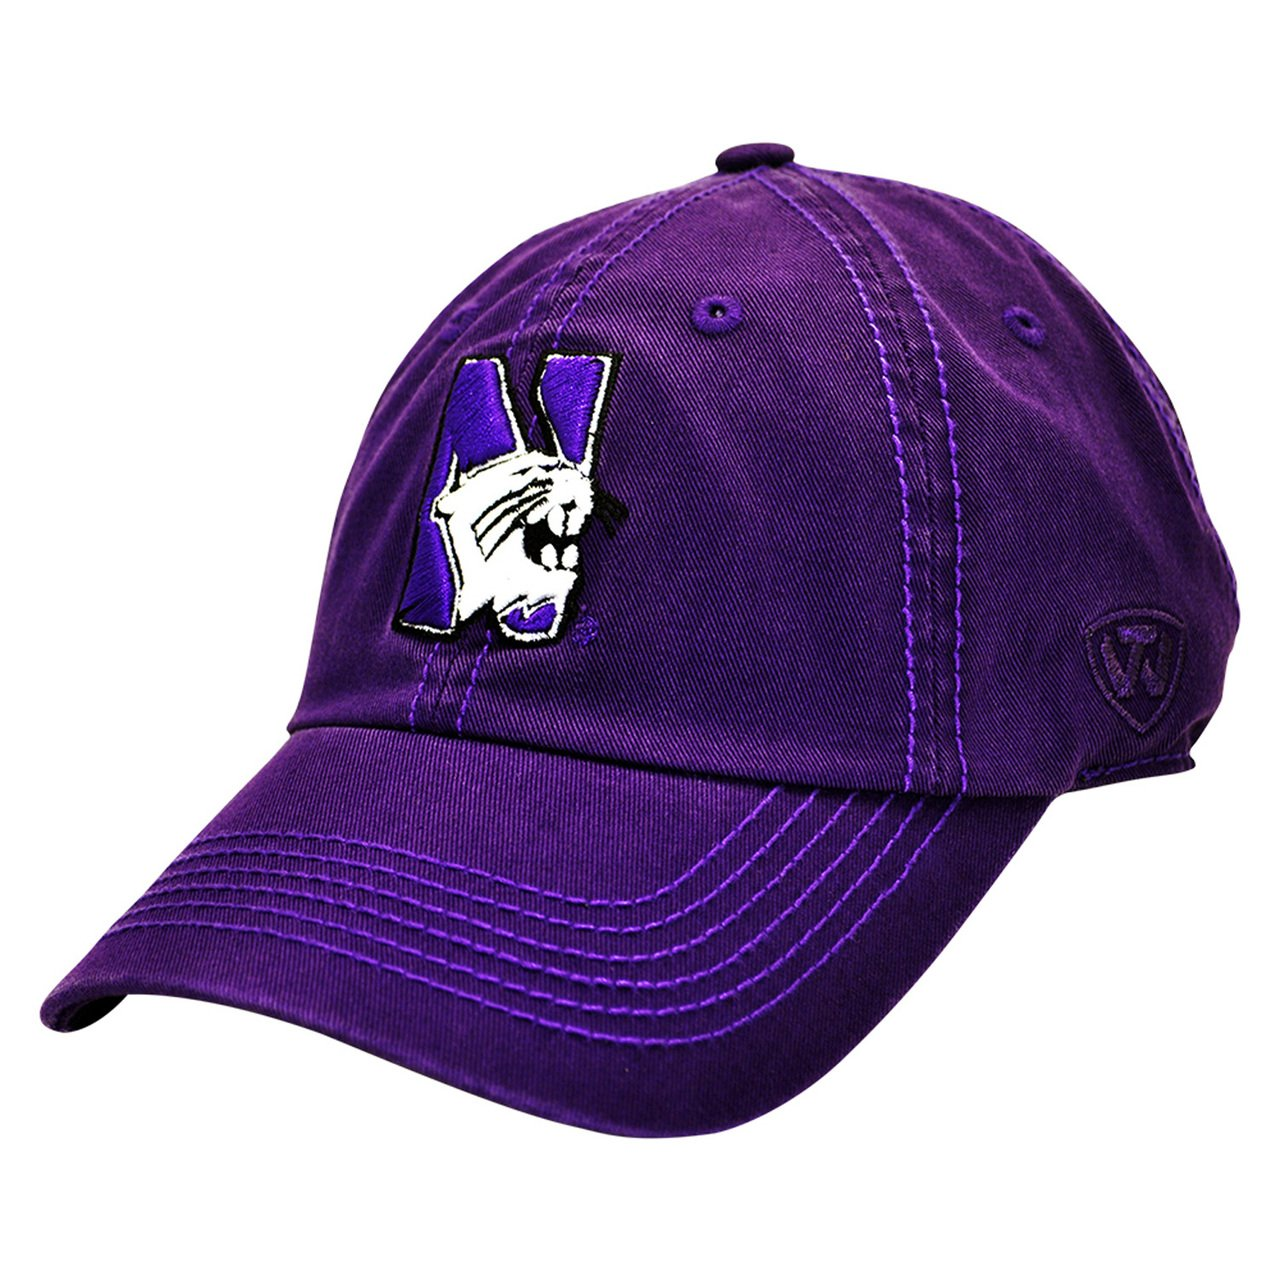 huge discount cd897 2a9c6 Amazon.com   Northwestern Wildcats Adjustable Crew Hat   Sports Fan  Baseball Caps   Sports   Outdoors